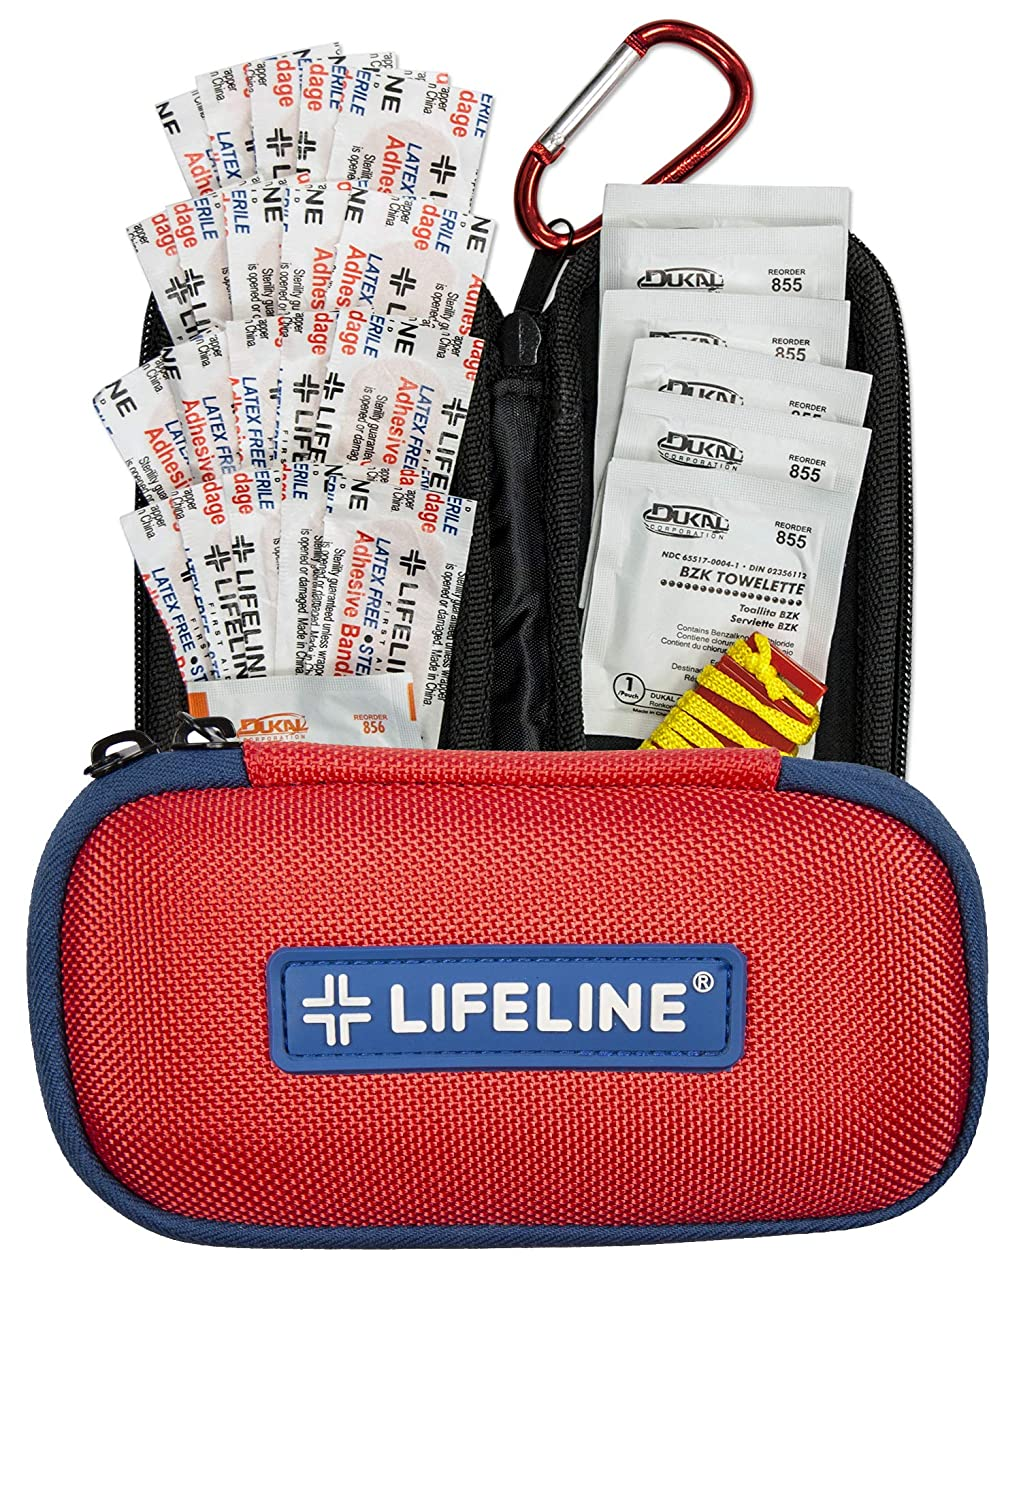 Lifeline 53 Piece First Aid Kit (Red) SS-SMS-4003471